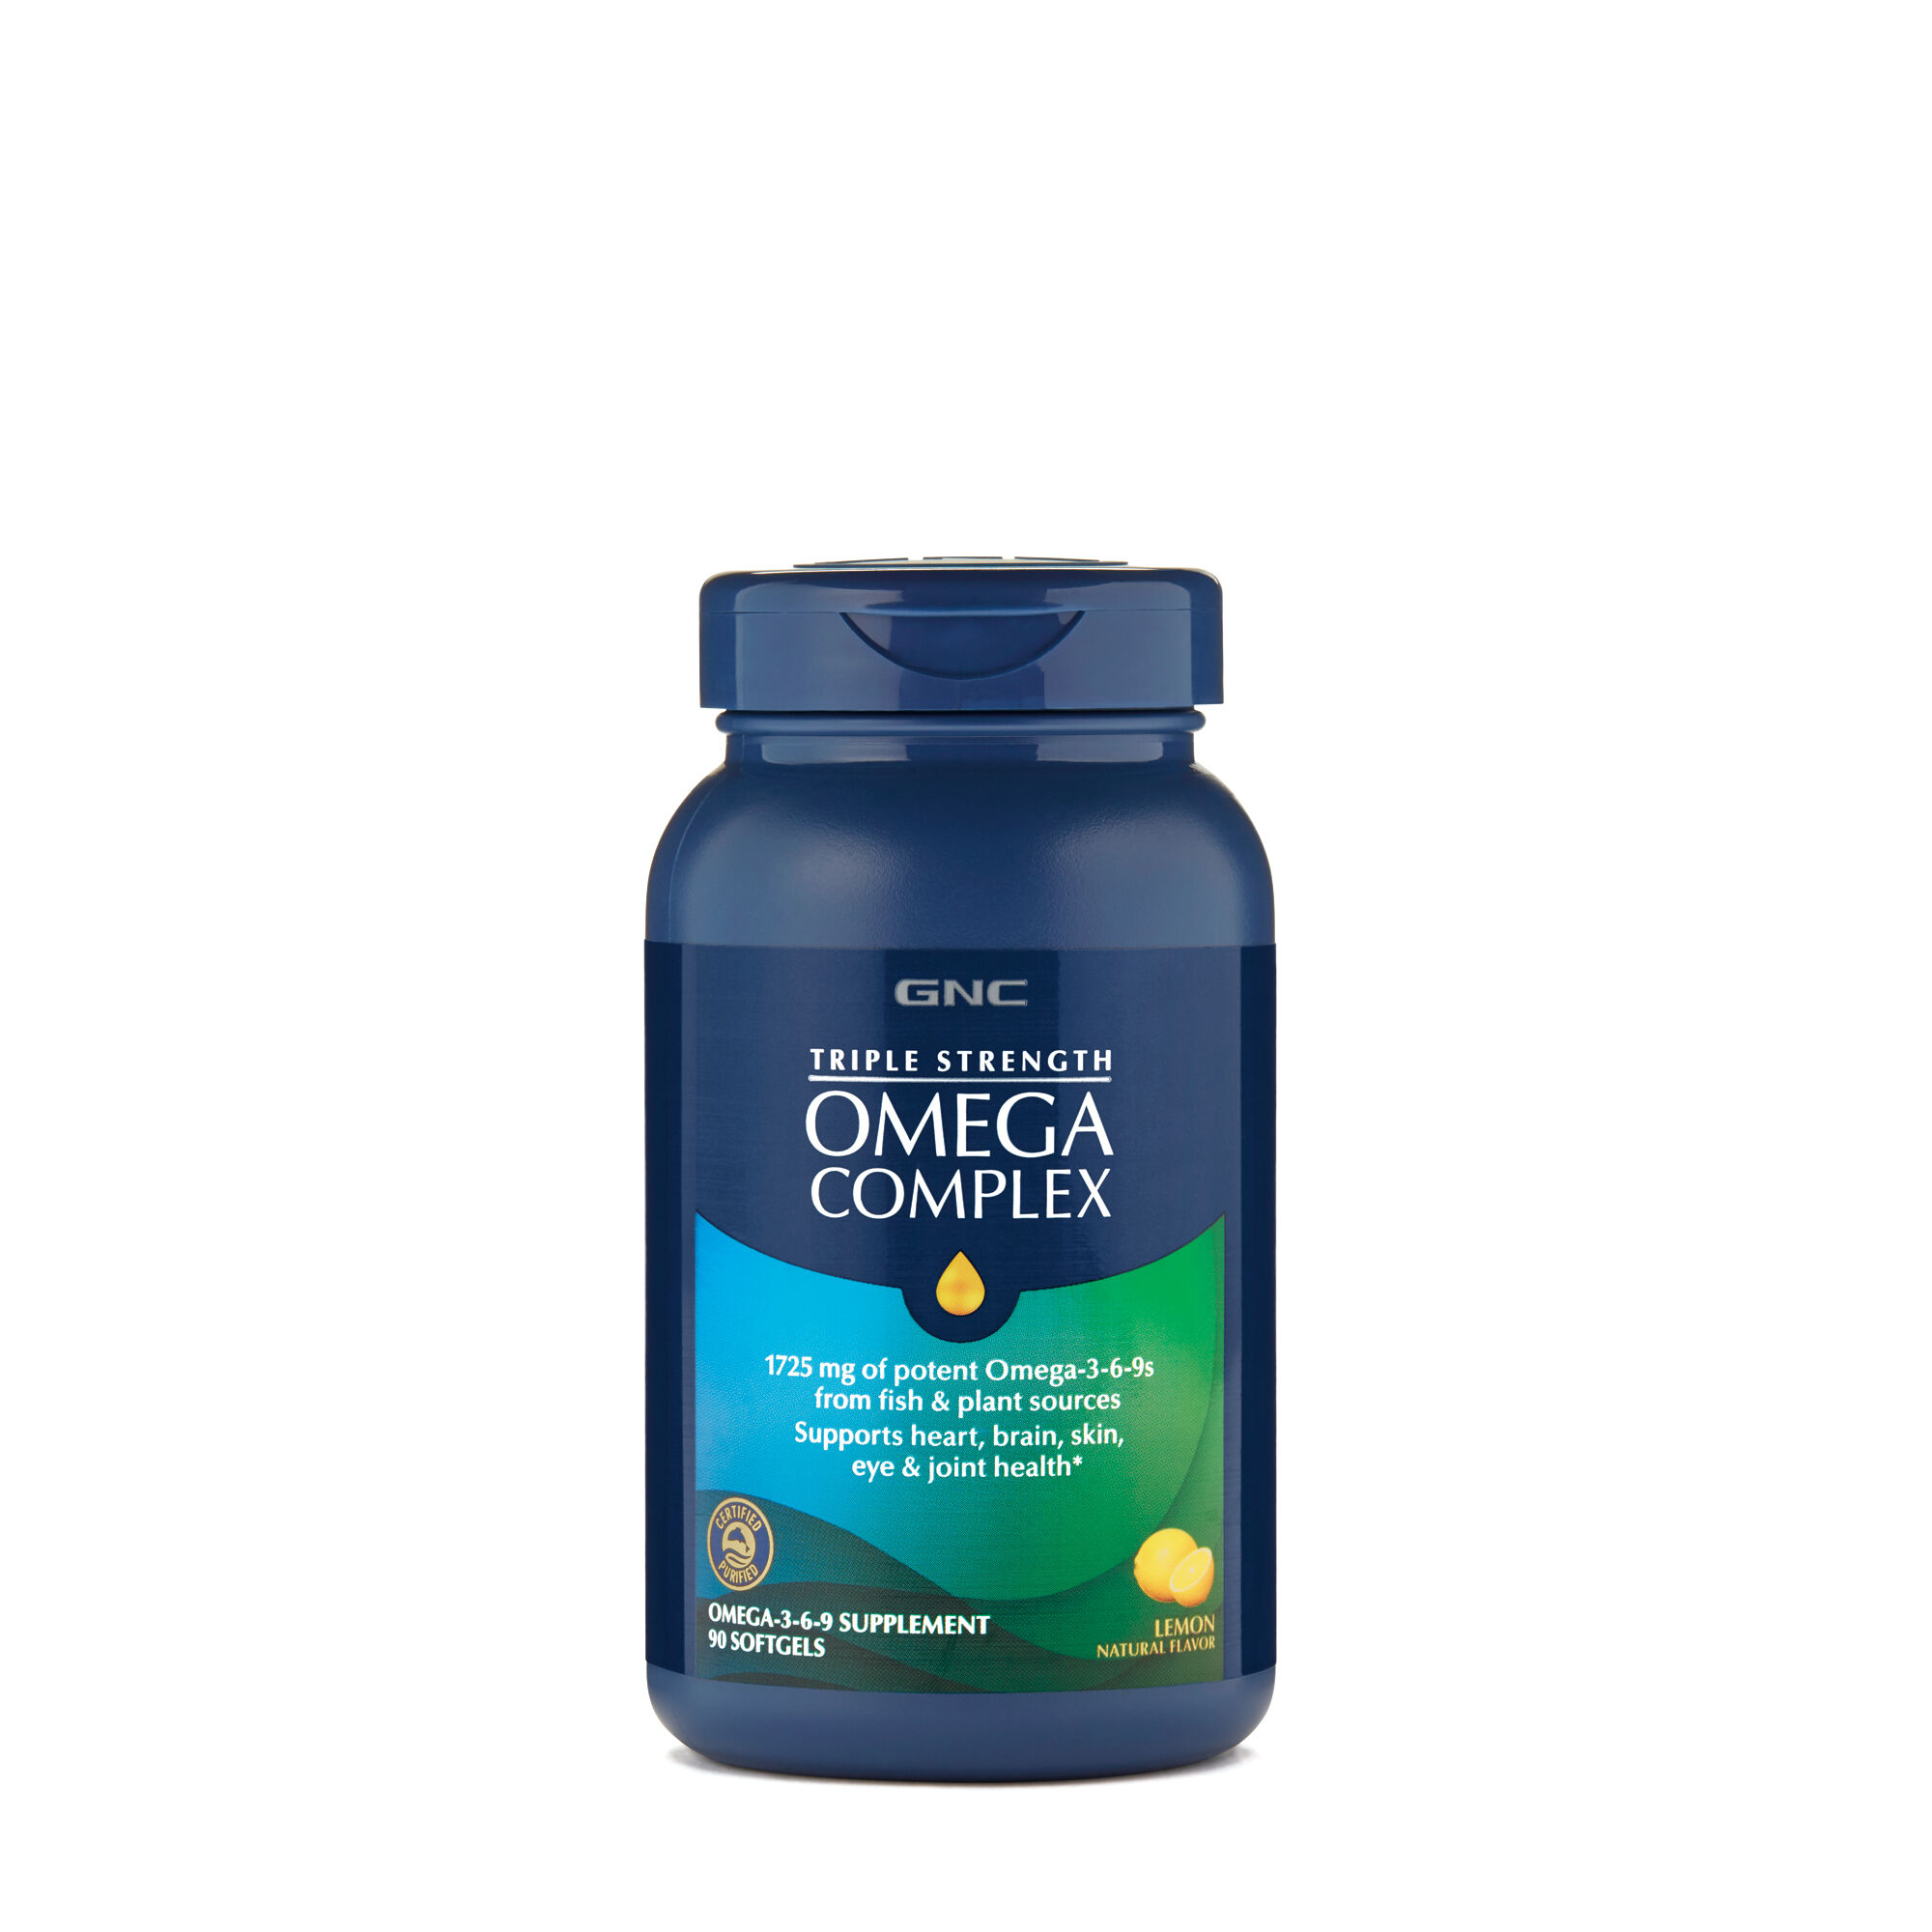 Algae oil pills for weight loss lose weight tips for Omegavia fish oil